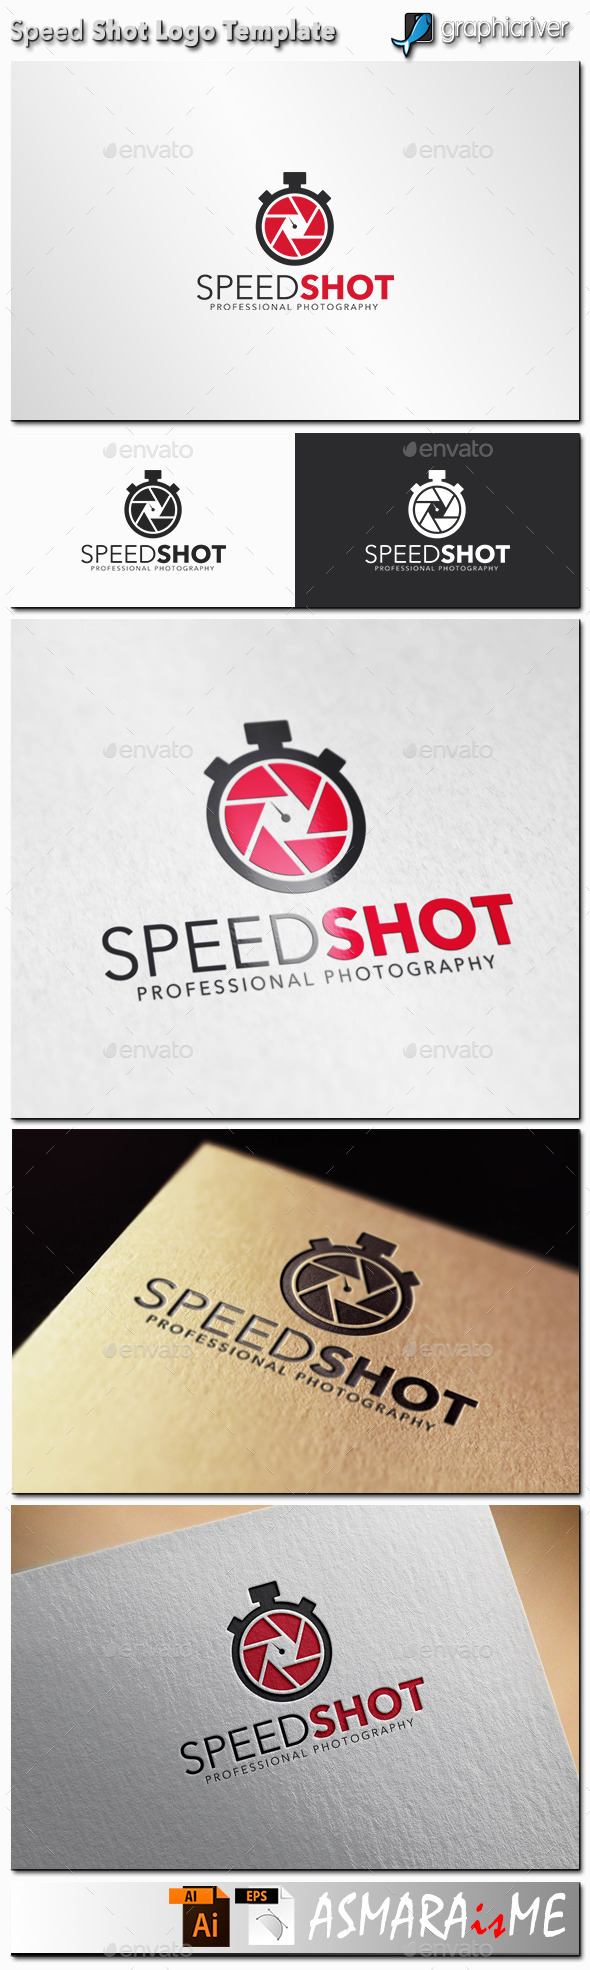 Camera Logo - Speed Shot Photography